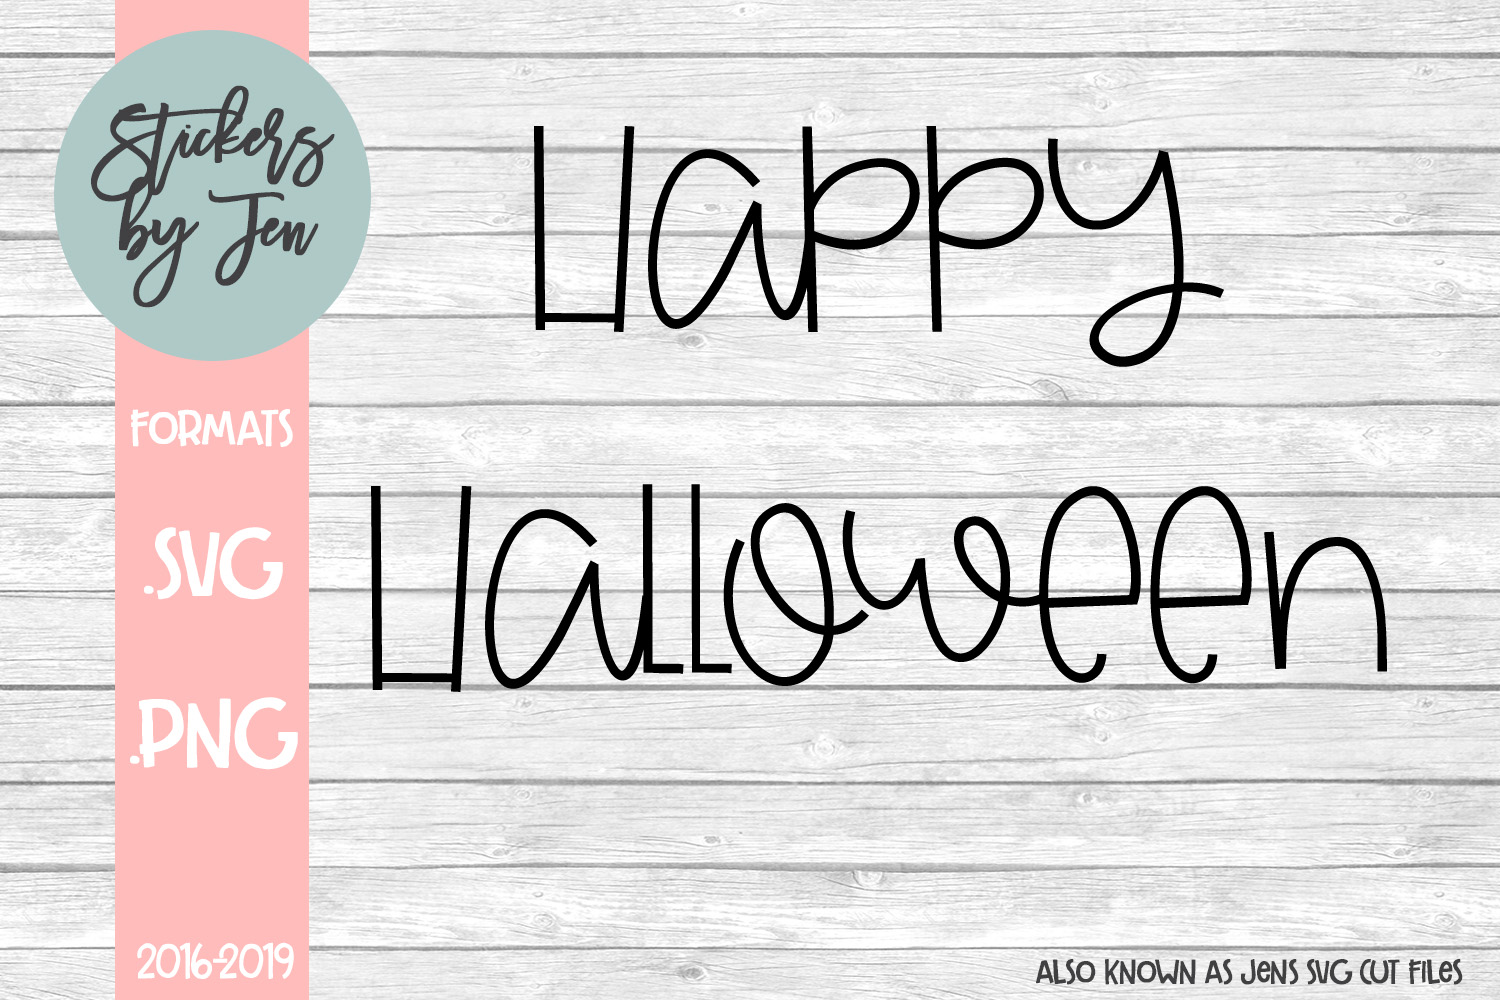 Happy Halloween Svg Graphic By Stickers By Jennifer Creative